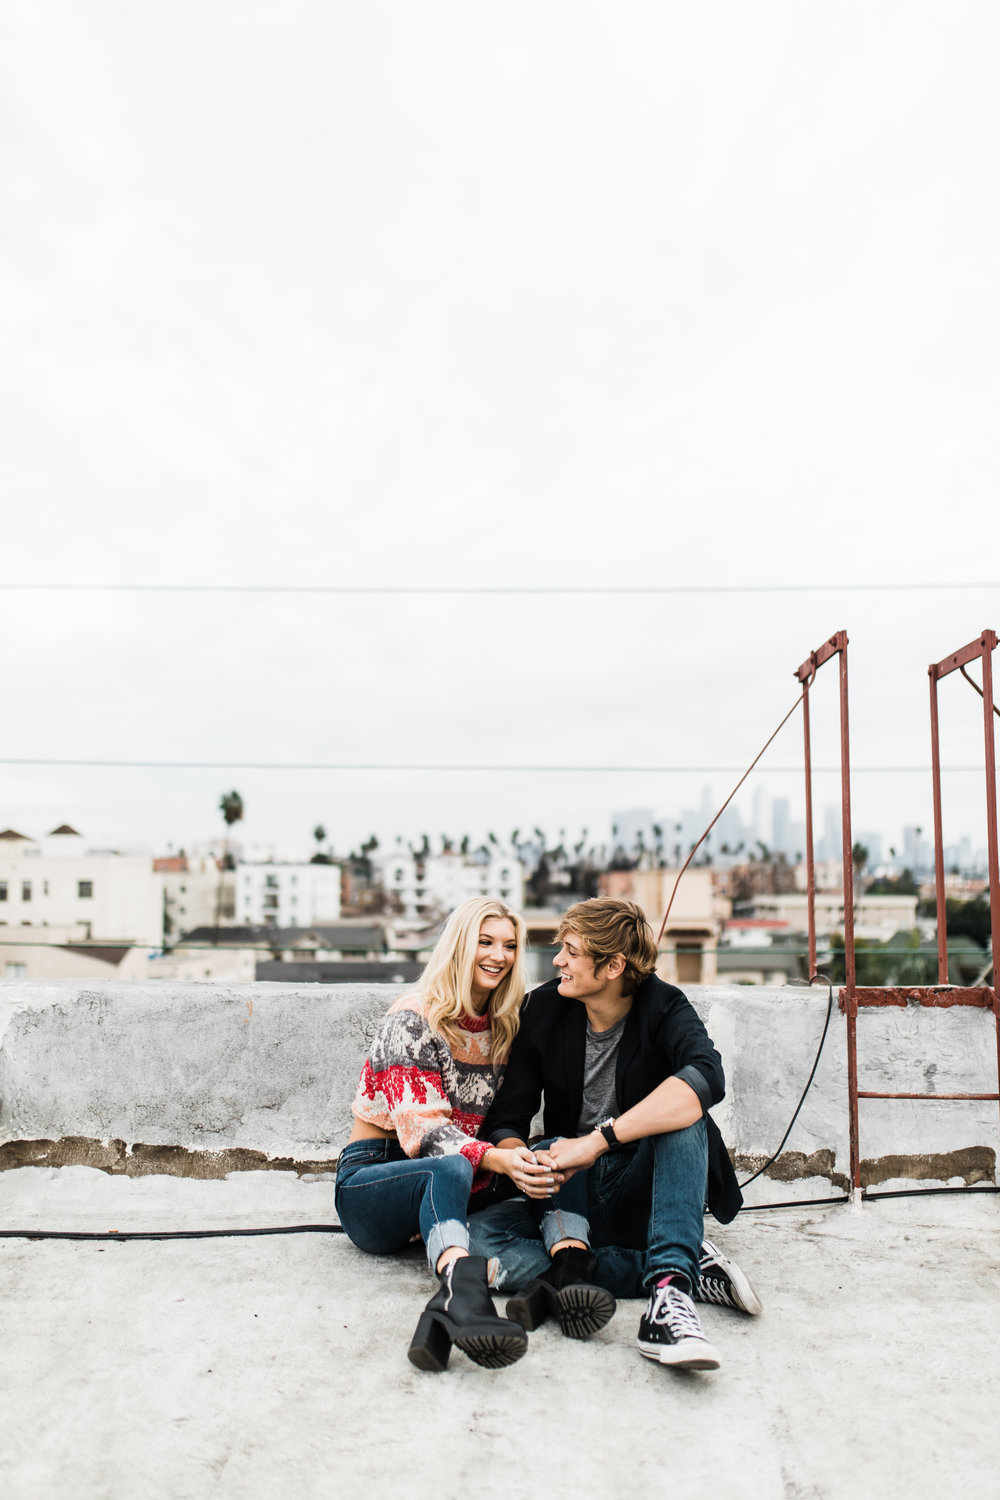 KylaLaufer&GusDeStJeor-Couples-Session-Los-Angeles-Rooftop-Sunset-Clarisse-Rae-Southern-California-Wedding-Photographer_15